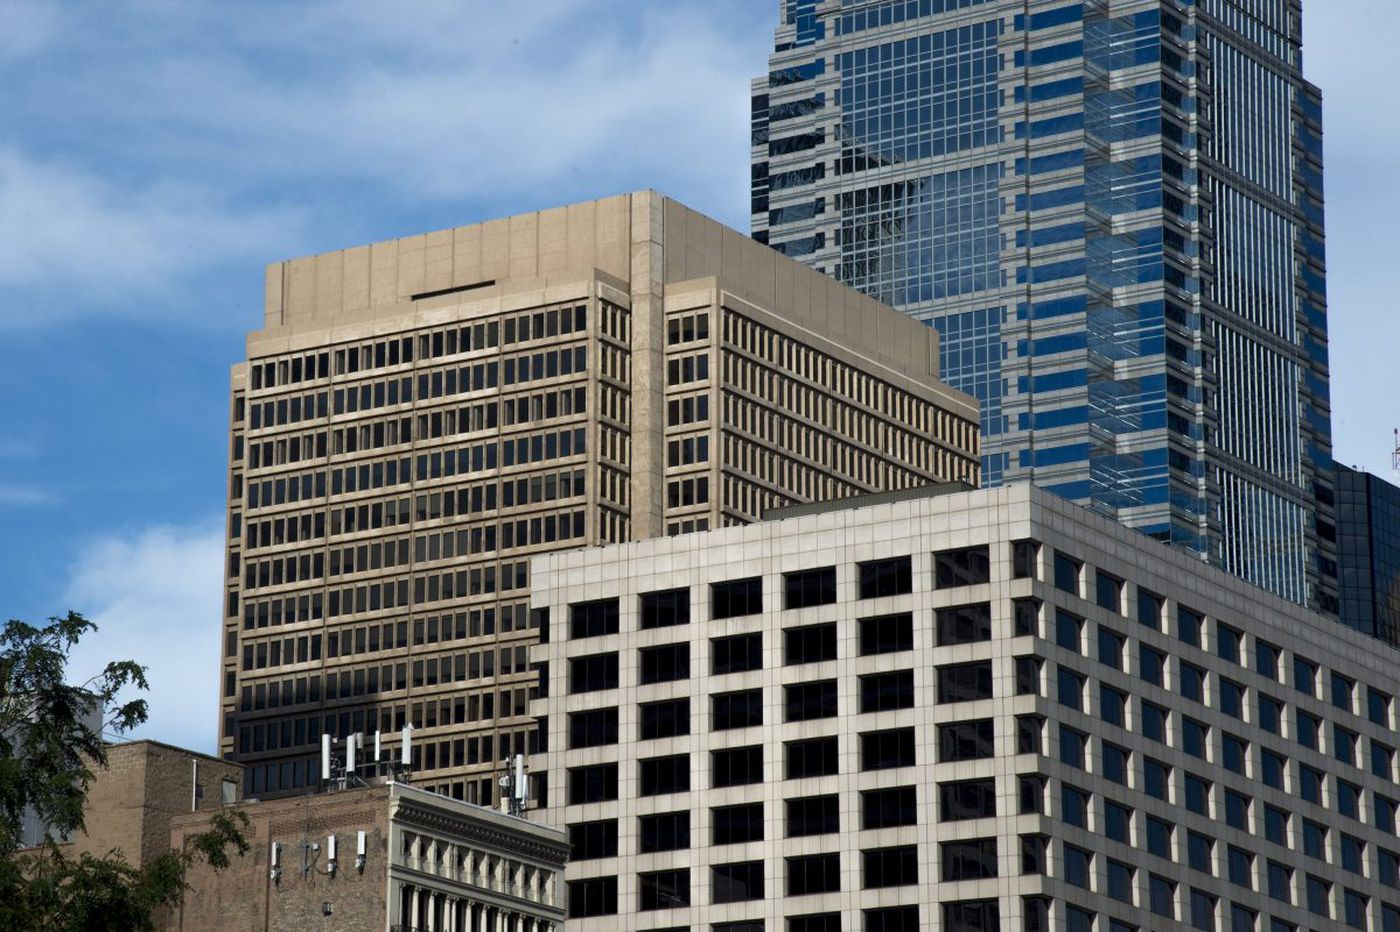 Life insurer Reliance Standard moves Center City HQ to 1700 Market St.